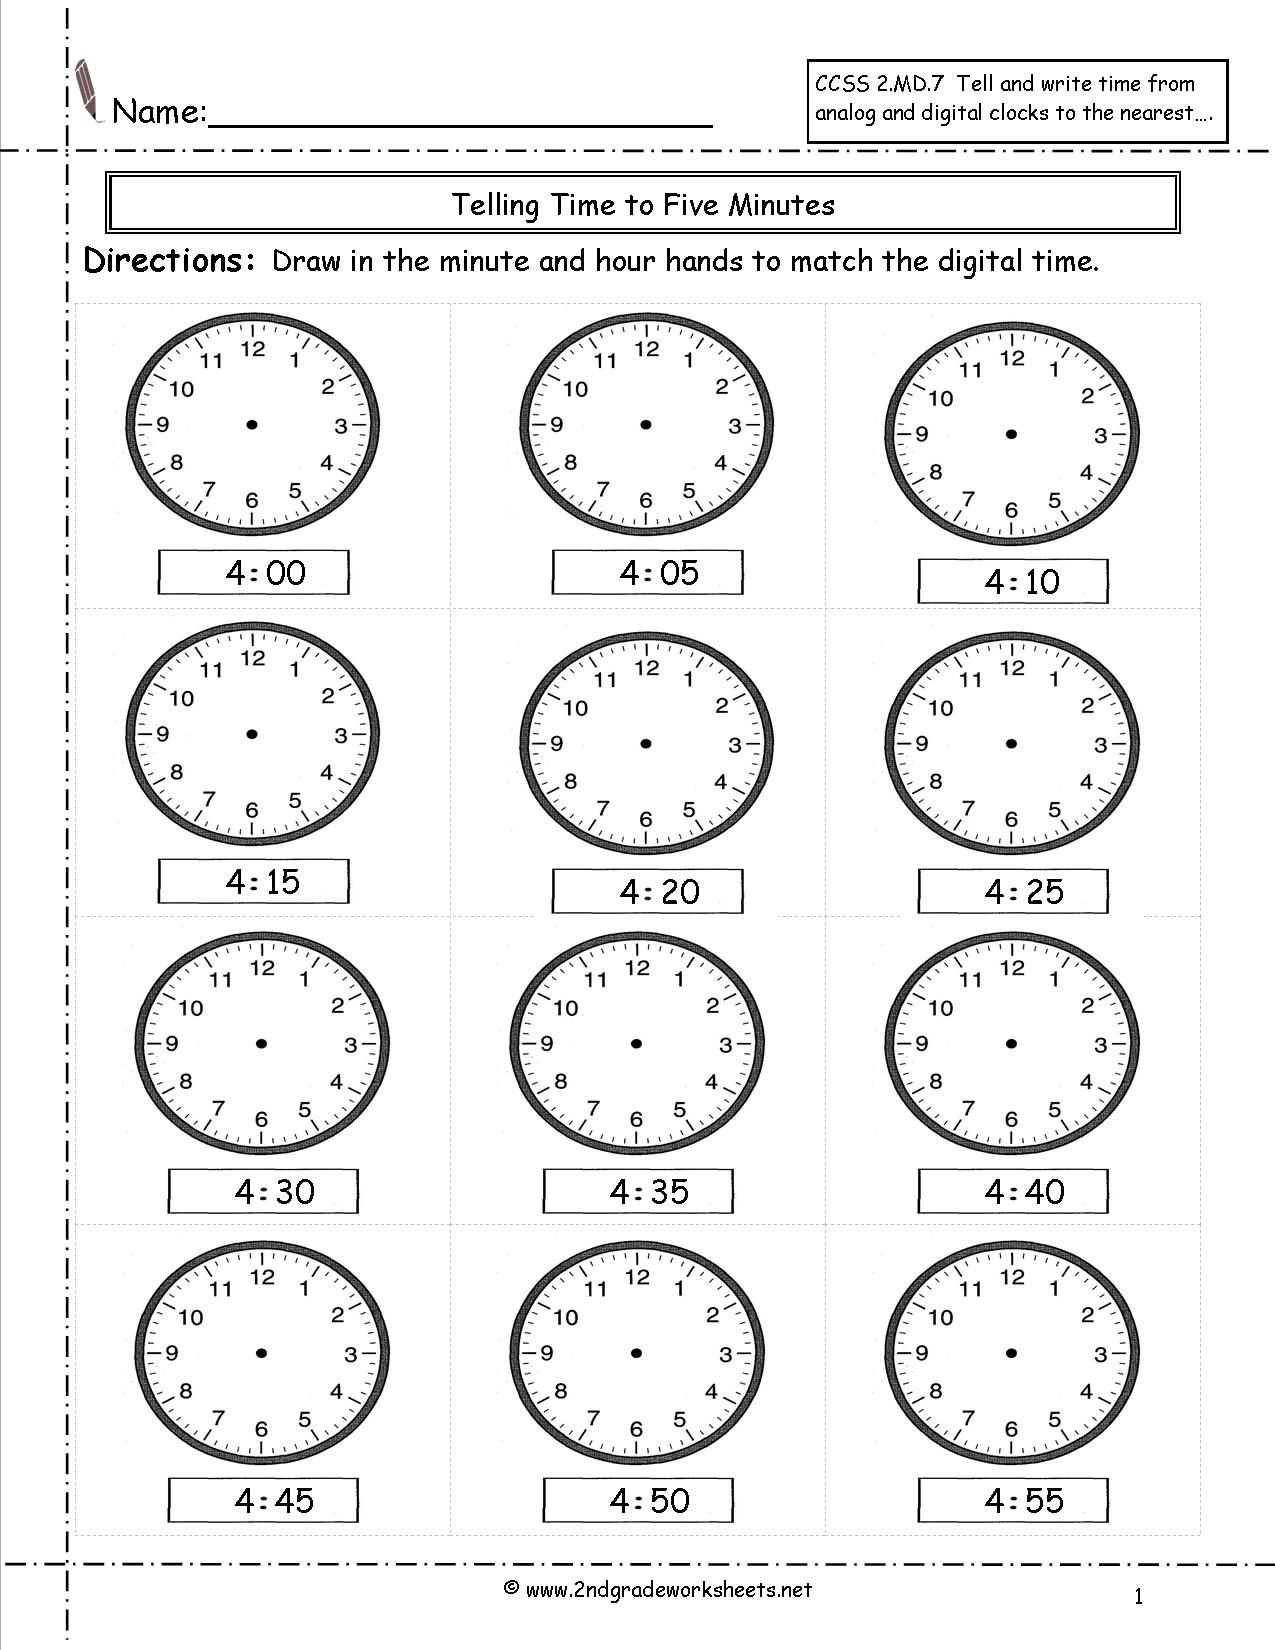 hight resolution of Marvellous Telling And Writing Time Worksheets Clock To The Hour  Tellingtimedrawhandsfourtofourfift ~ …   Telling time worksheets